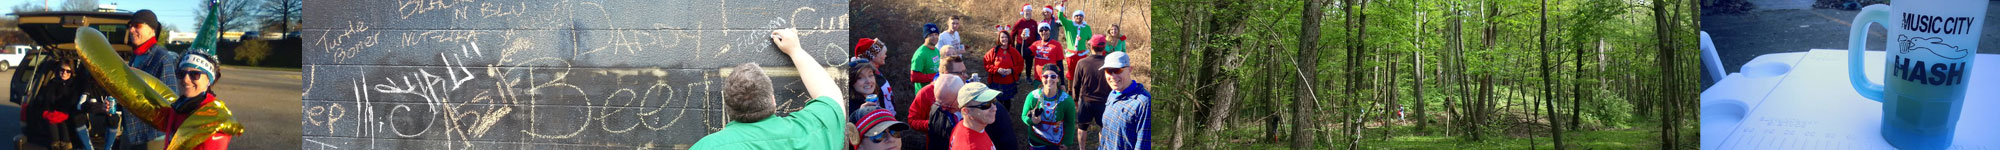 Music City Hash House Harriers